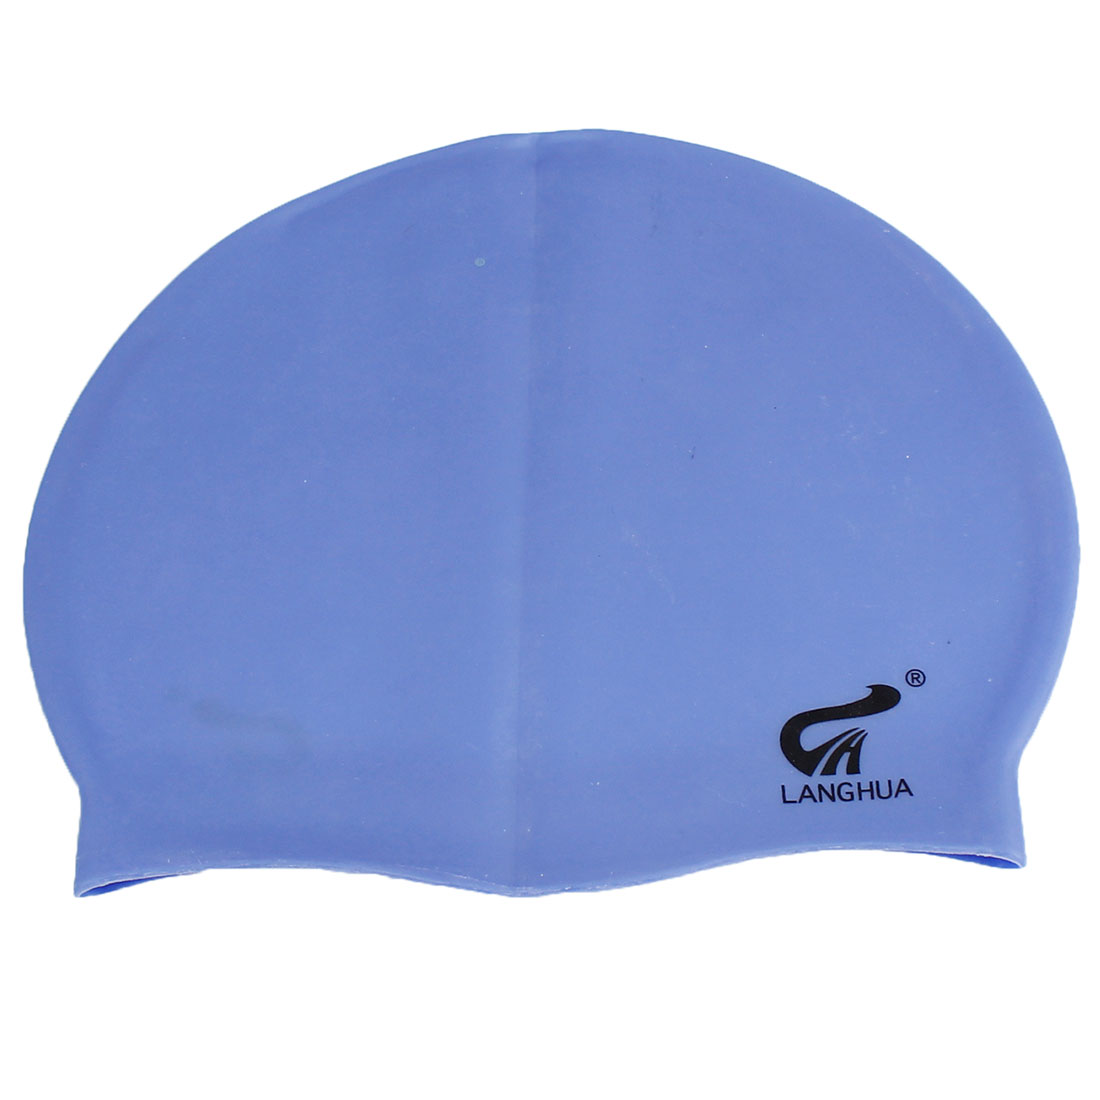 Silicone Elastic Sport Swimming Swim Waterproof Cap Hat Sky Blue for Adults